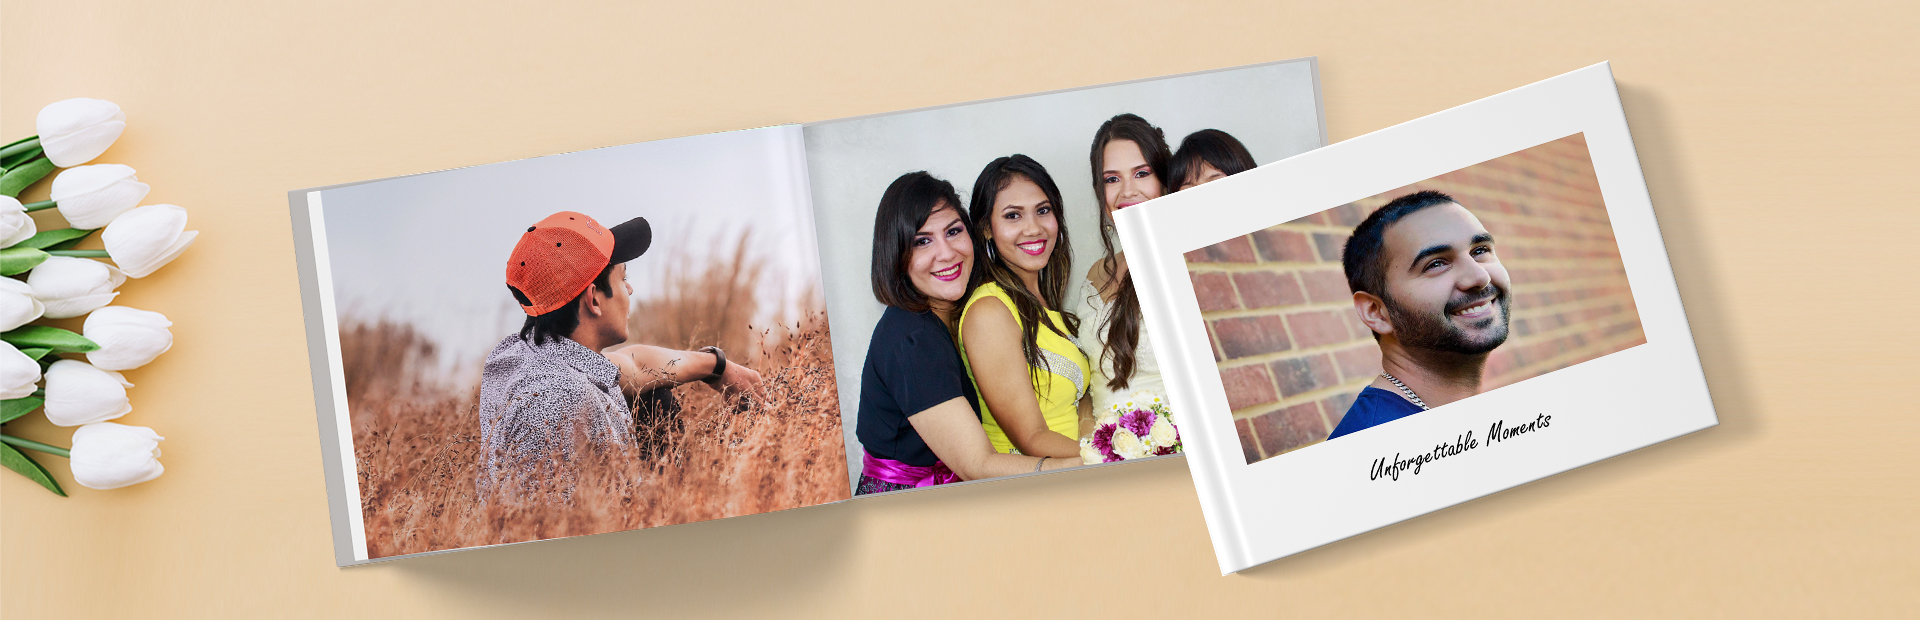 Timeless Classic Photo Books Online